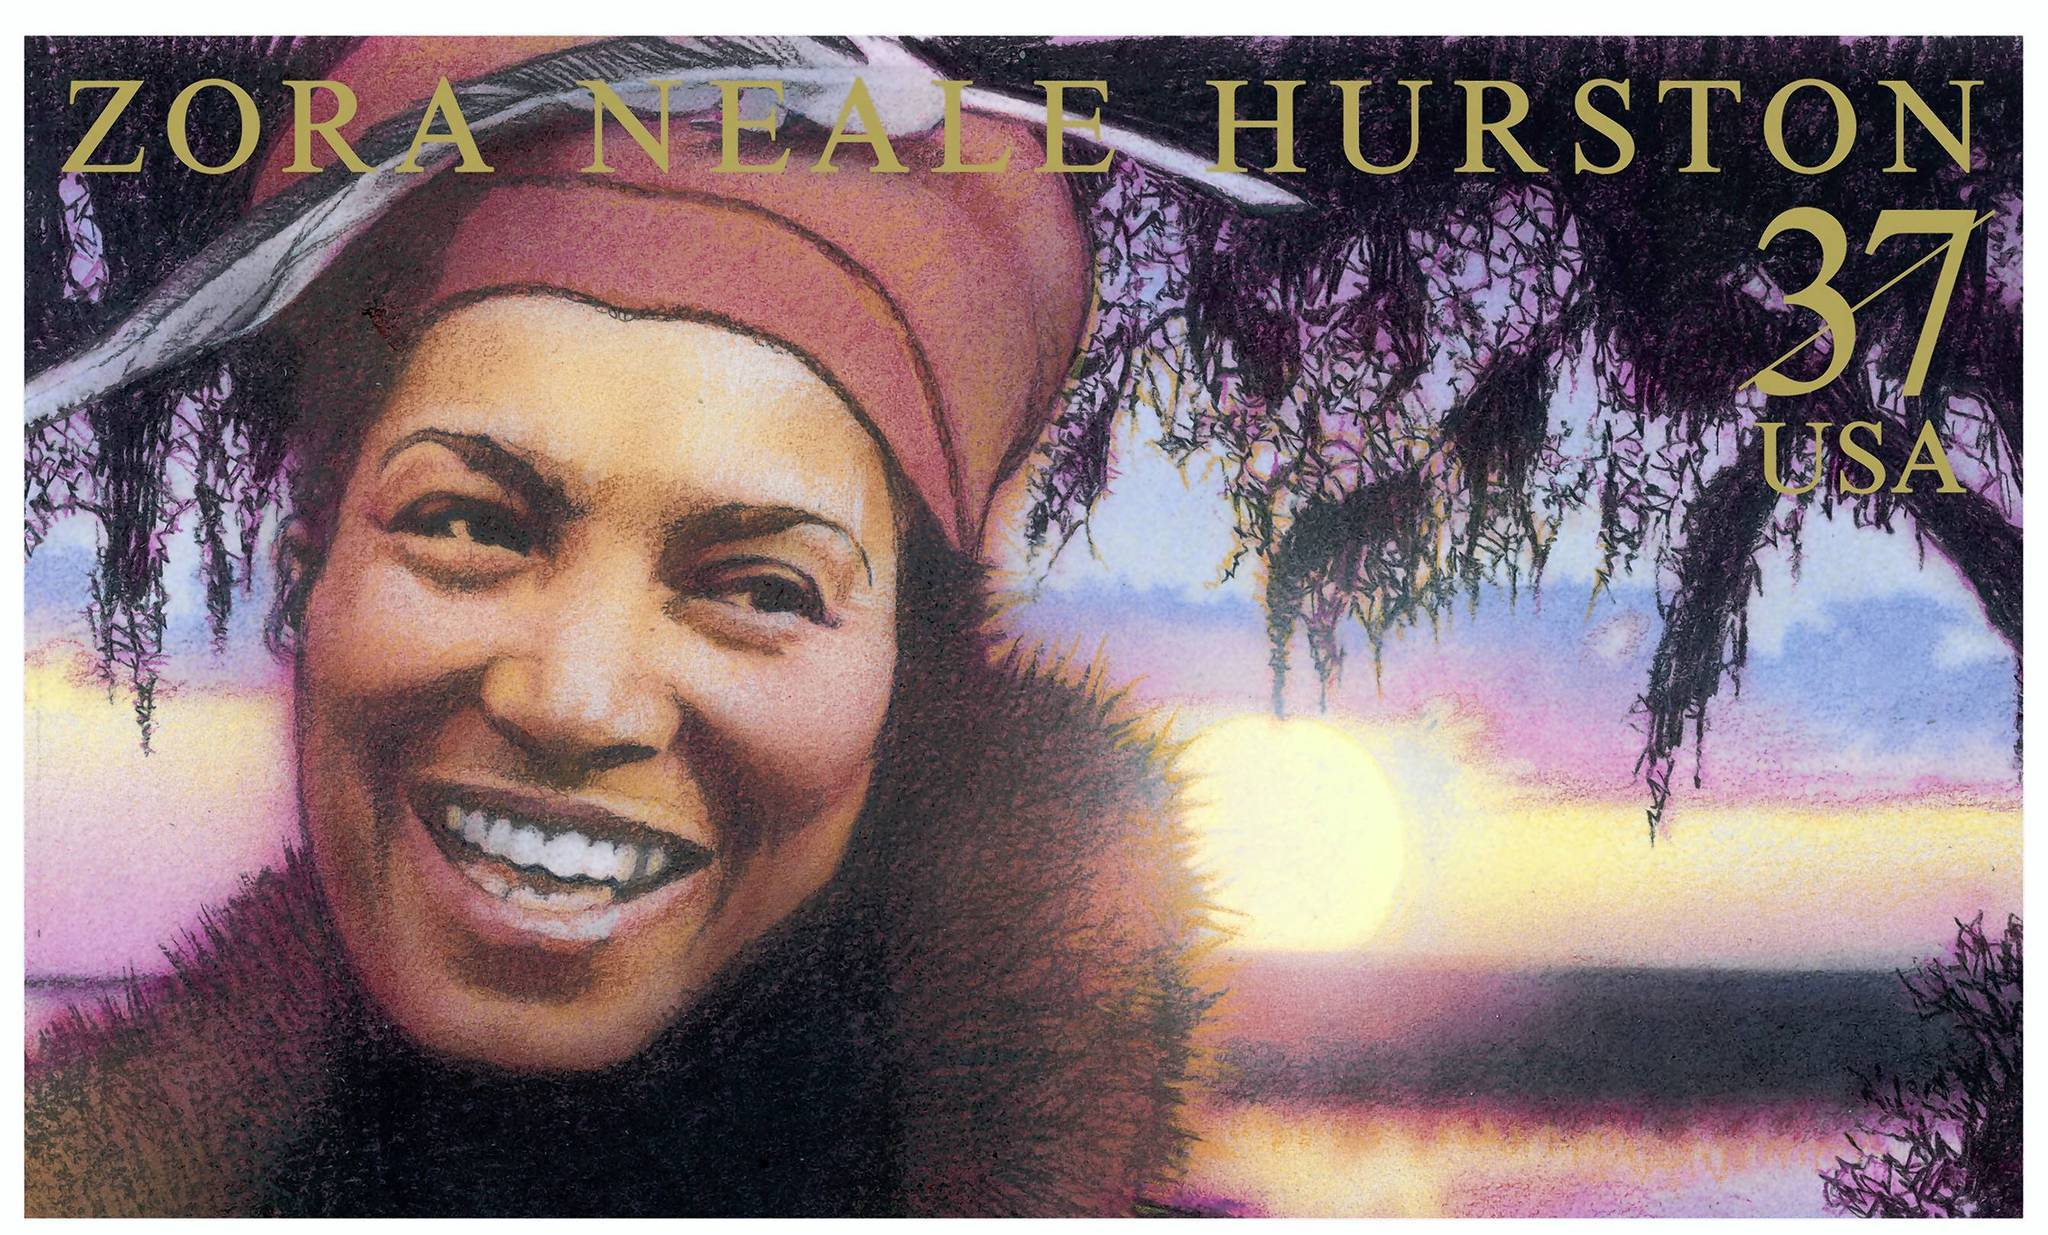 A U.S. stamp featured author Zora Neale Hurston in 2003, pictured against a lake-view sunset in Eatonville. A 2-day conference in Eatonville on Sept. 20-21 will celebrate the 75th anniversary of the publication of Hurston's novel 'Their Eyes Were Watching God.' The event features top Hurston experts, tours, and an old-time fish fry. For details, go to zorafestival.com or call 407-647-3307.